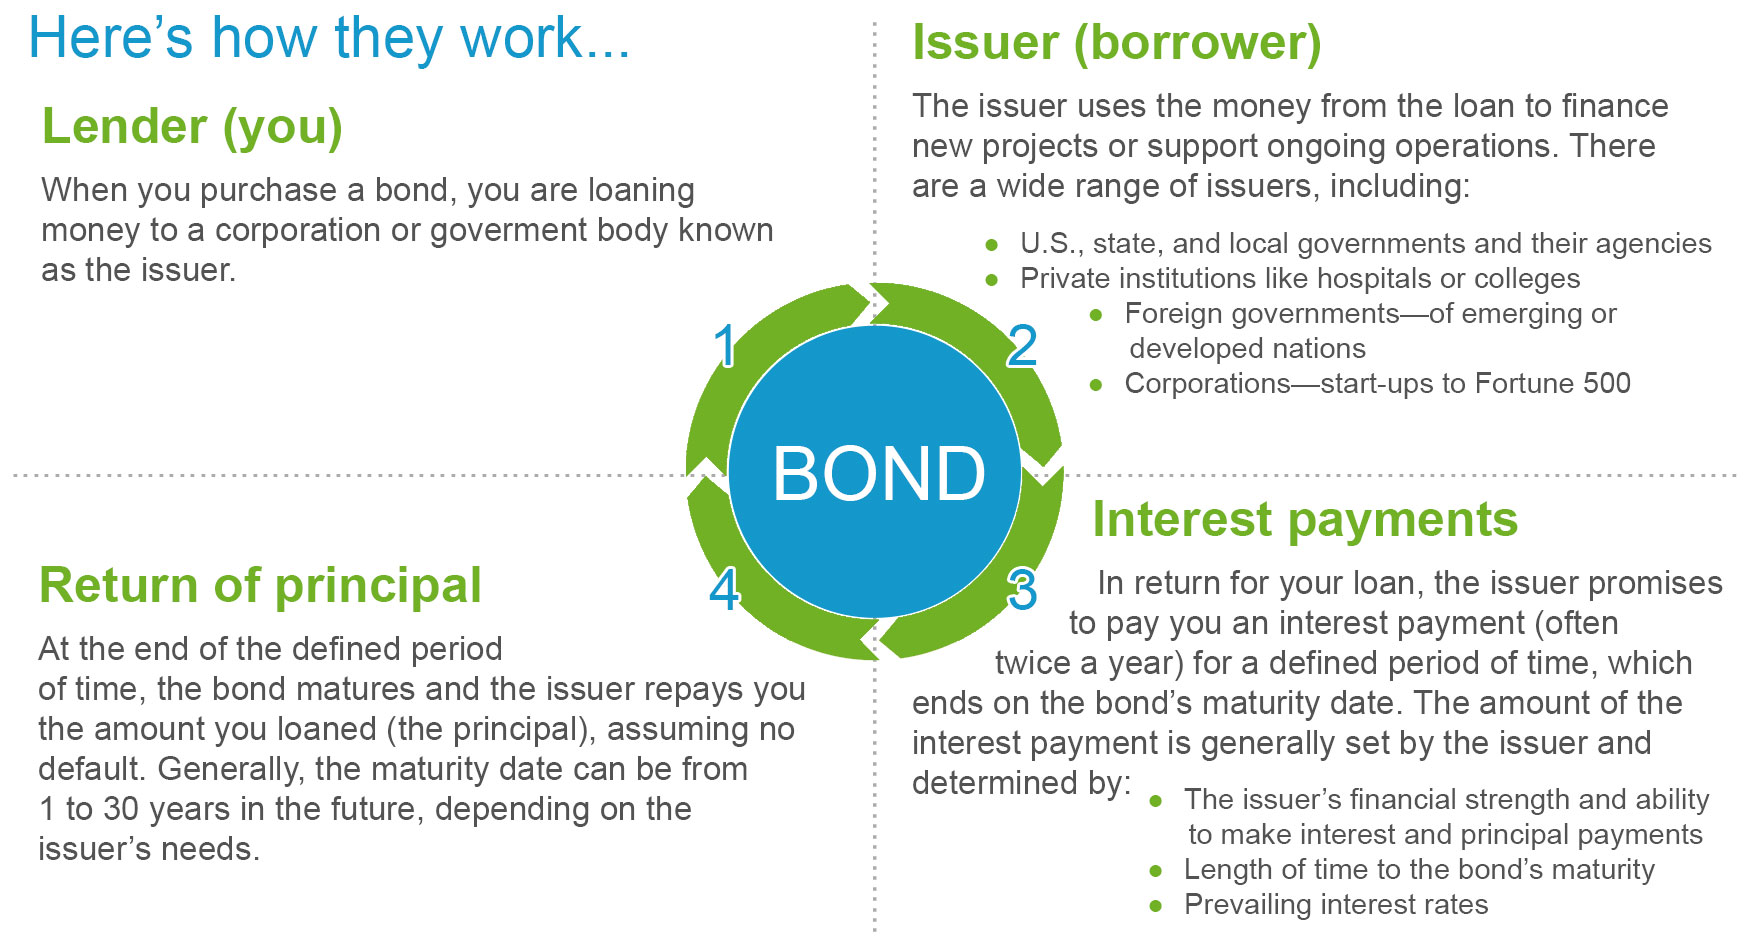 Fixed maturity bond funds